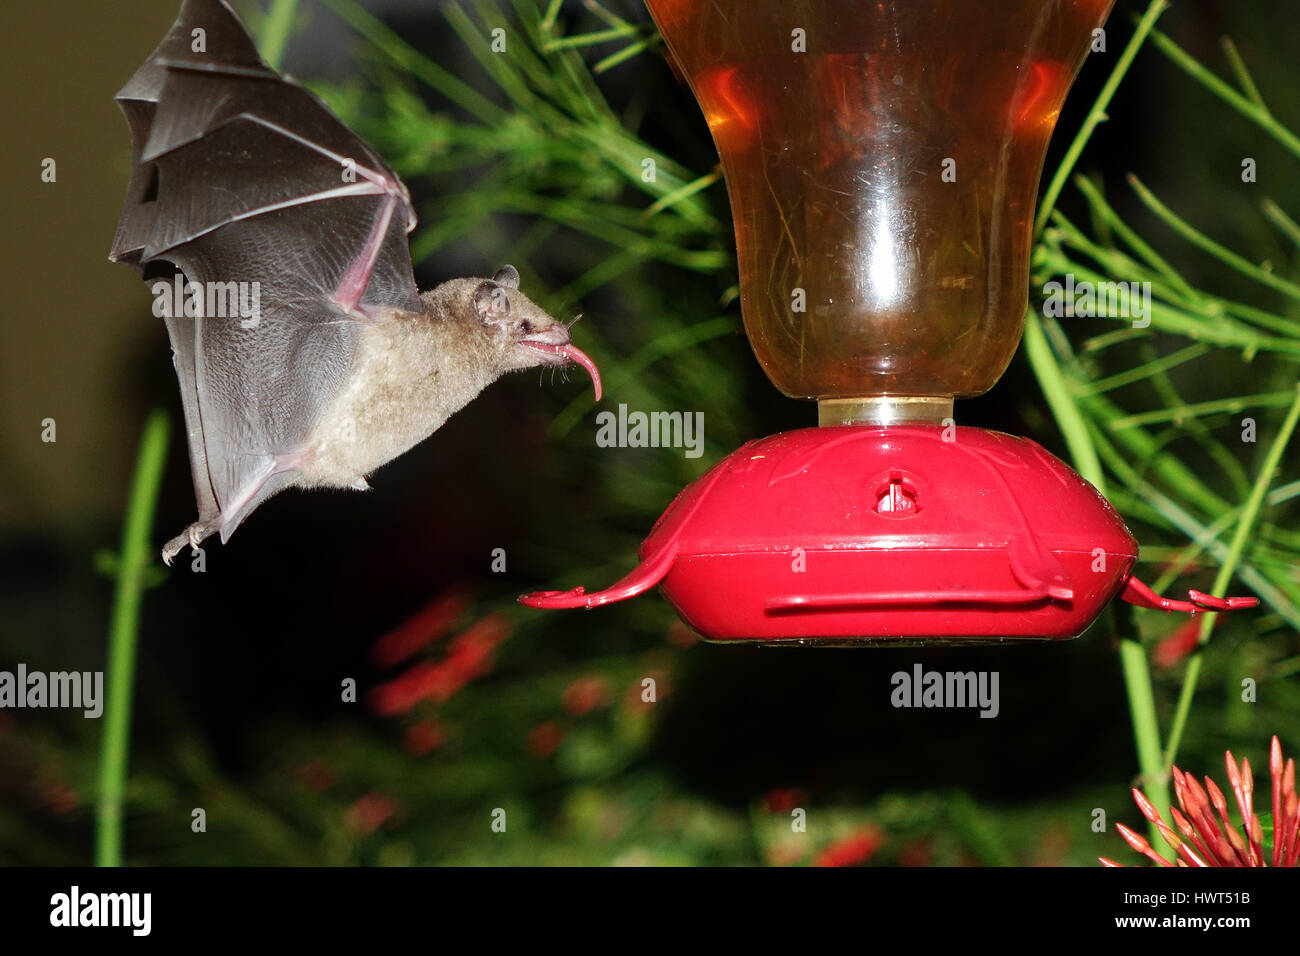 Bat flying and searching for food Stock Photo